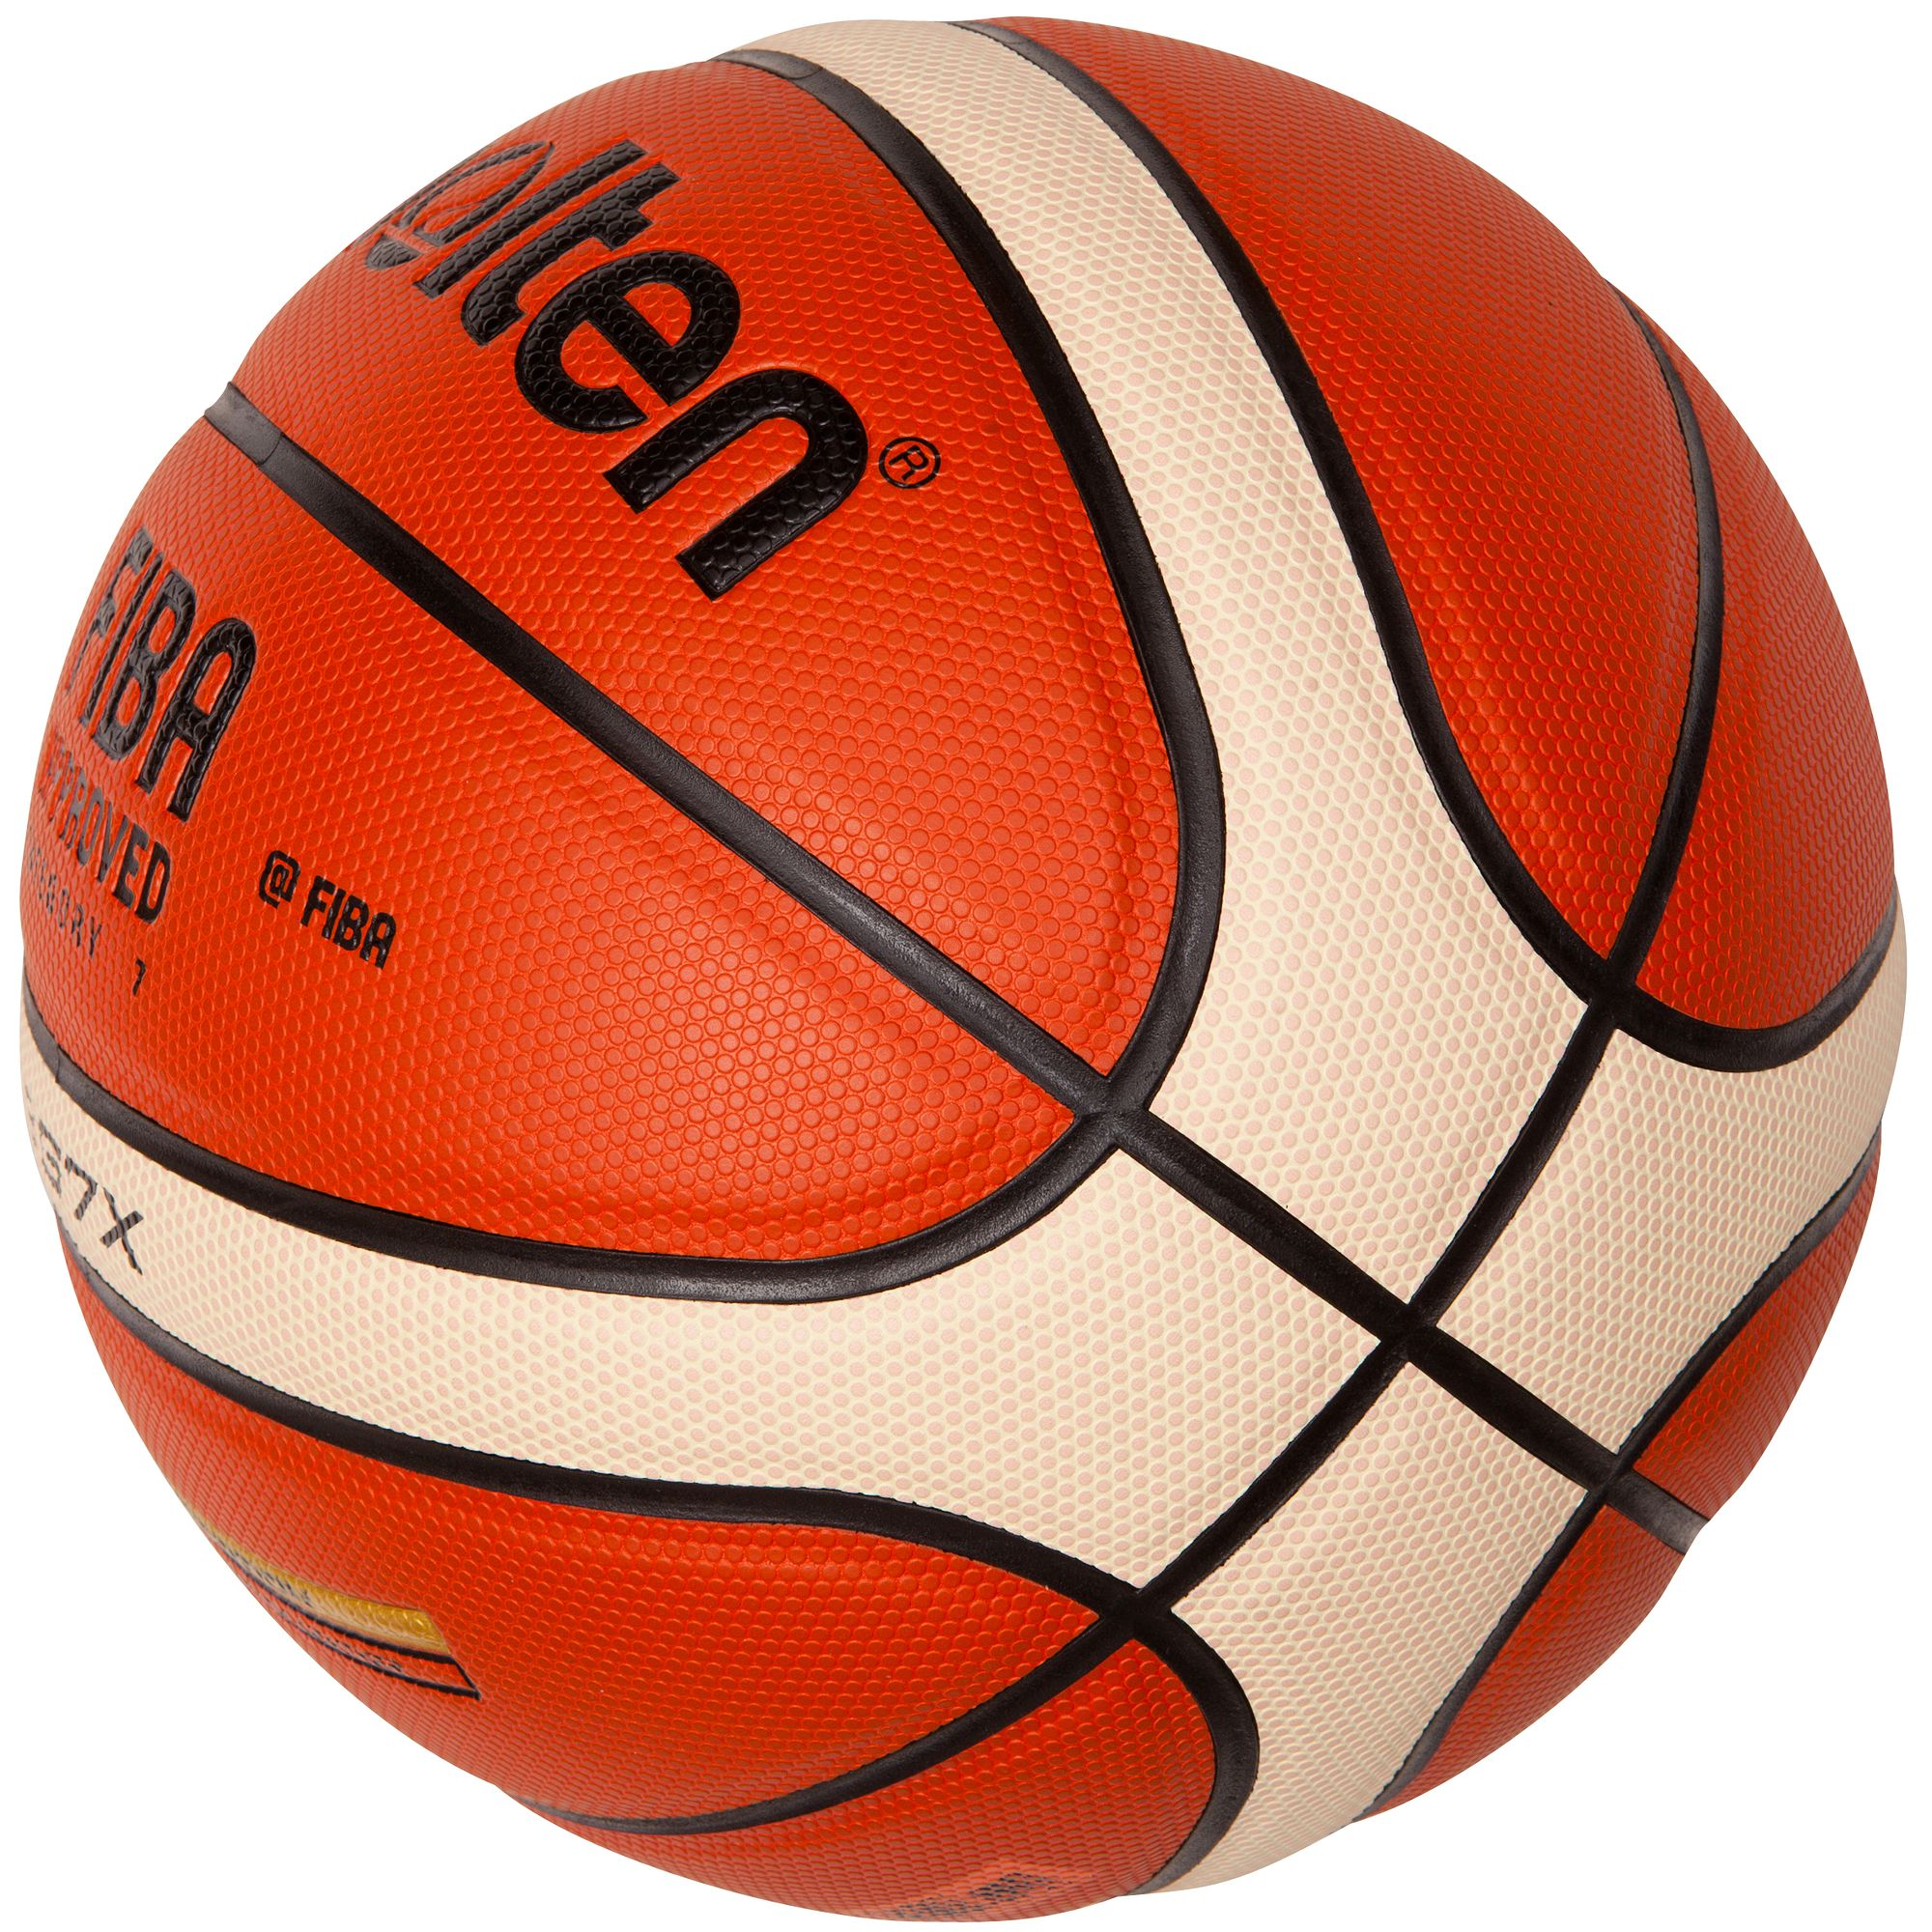 Ballon basketball molten gg7x taille 7 clubs collectivit s decathlon pro - Ballon basket decathlon ...